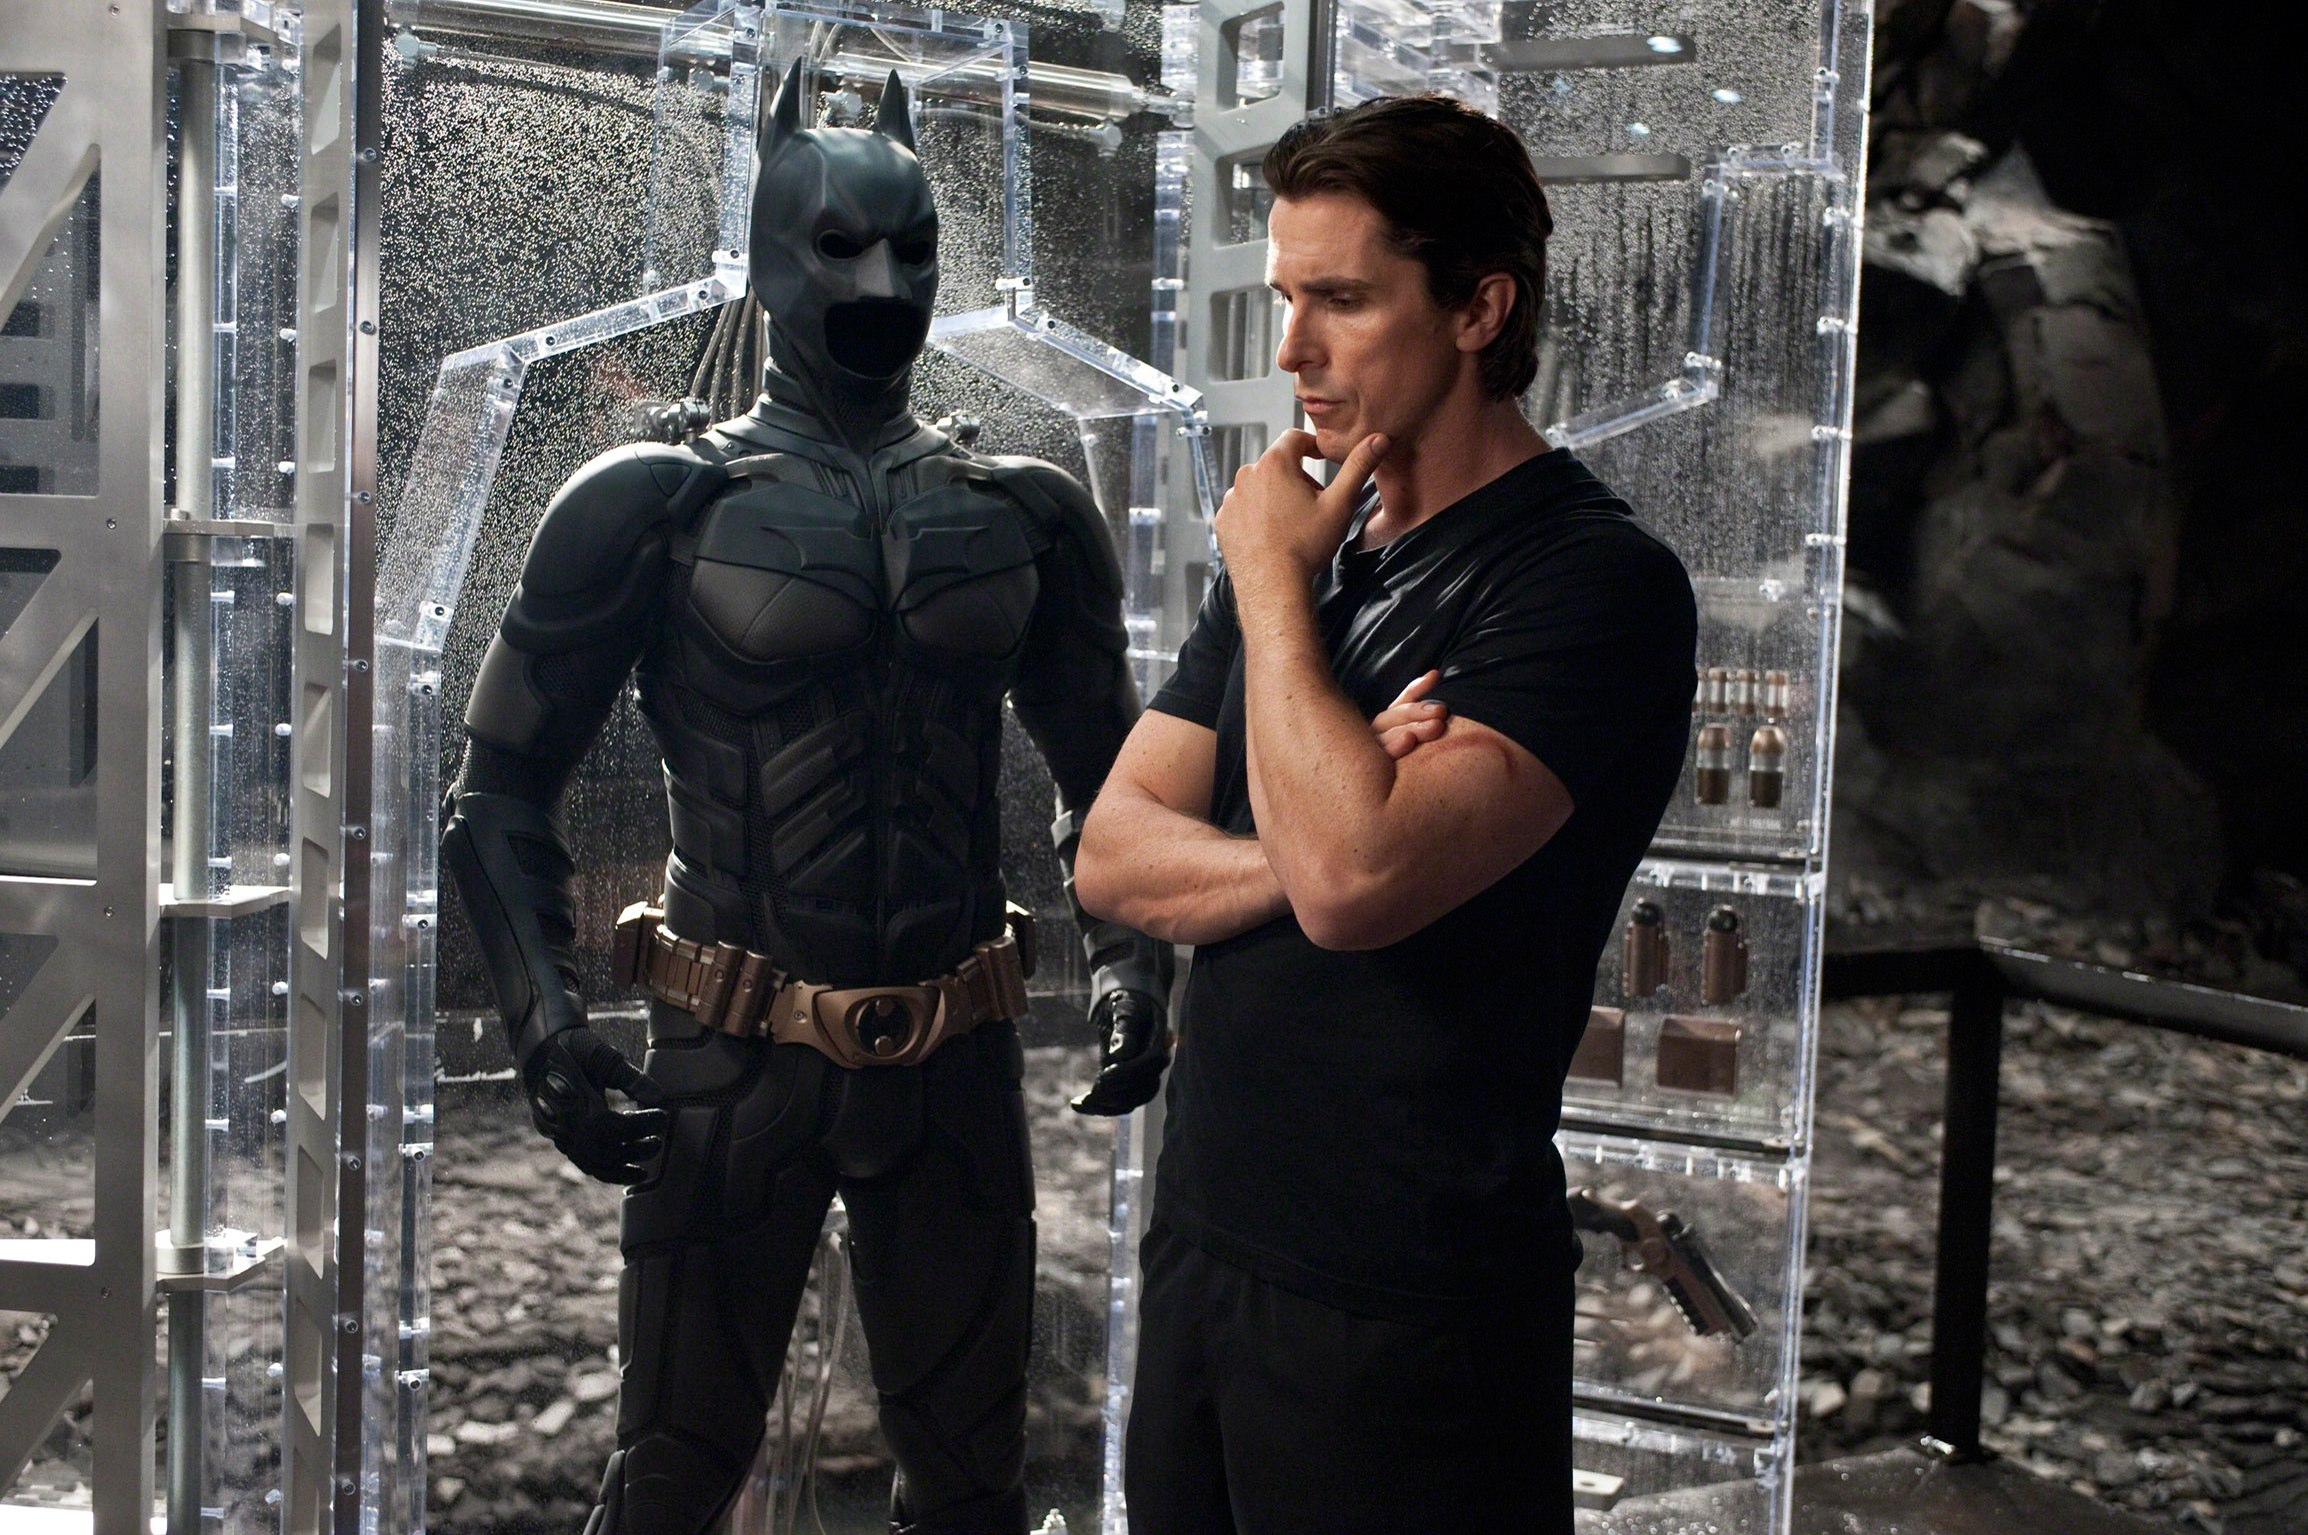 Christian Bale Famous Actors Who Do Their Own Stunts